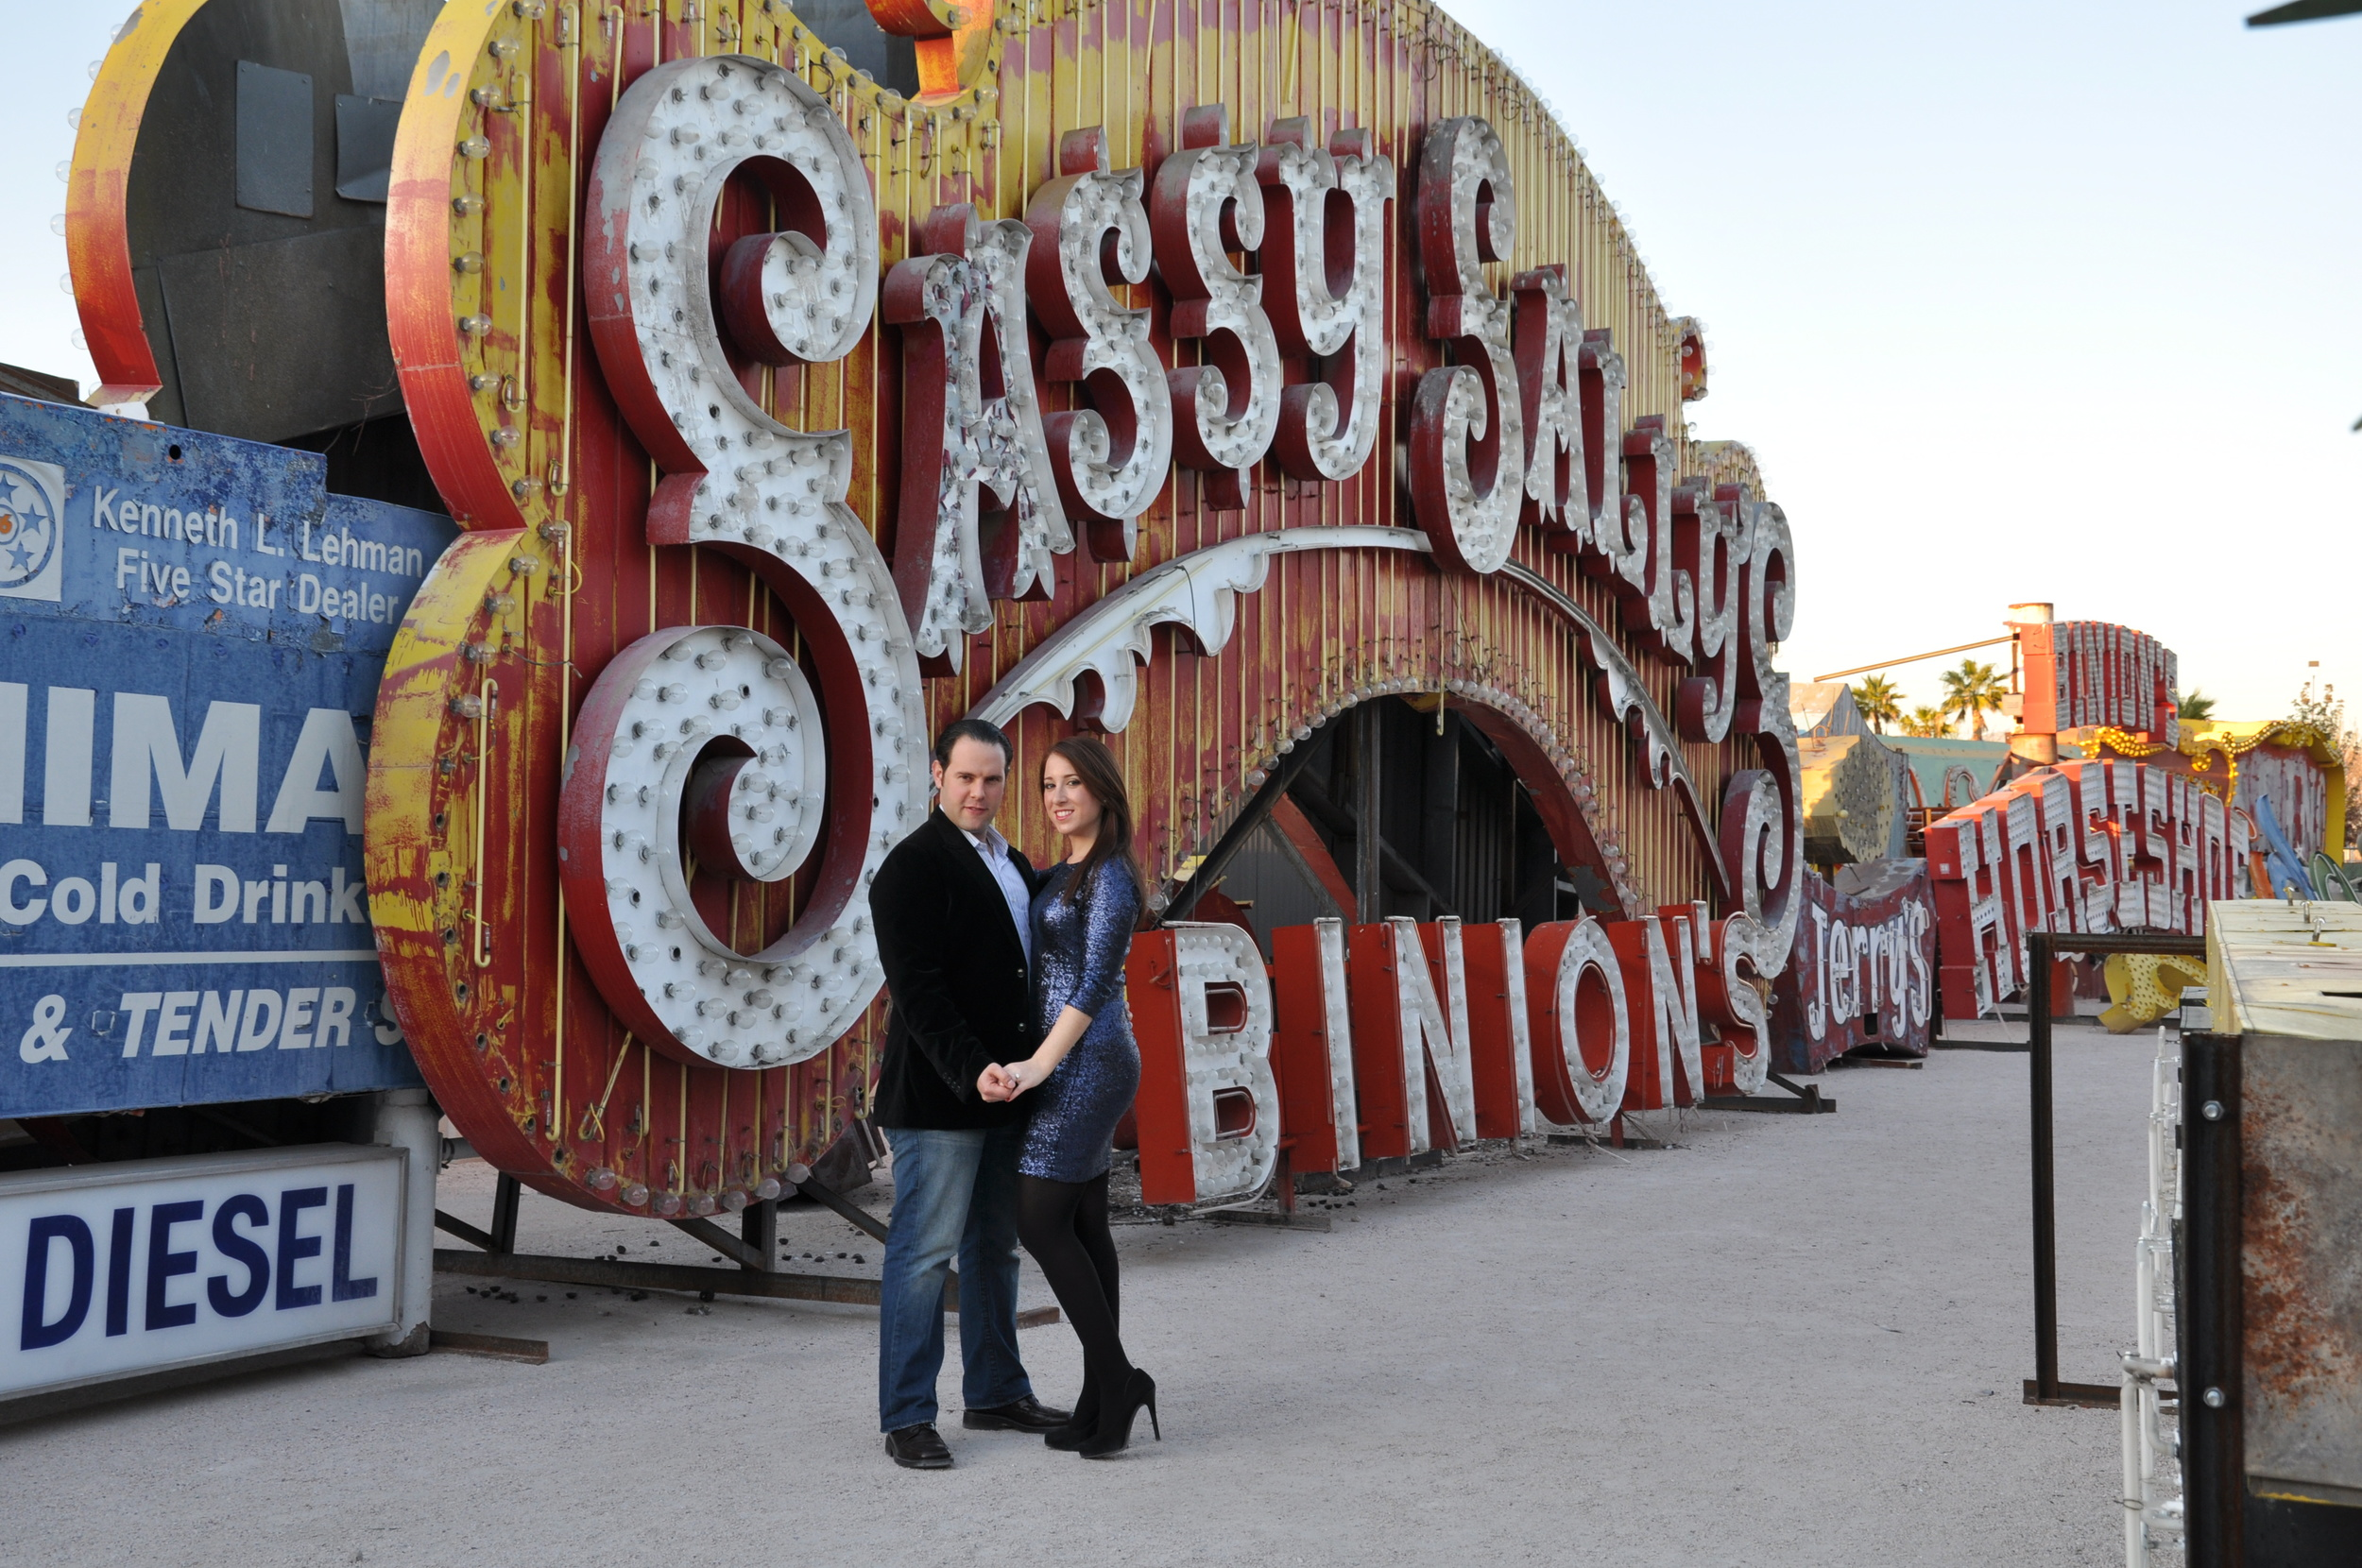 Engagement Photos at Neon Graveyard - Super colorful and perfect for a Las Vegas Destination Wedding!